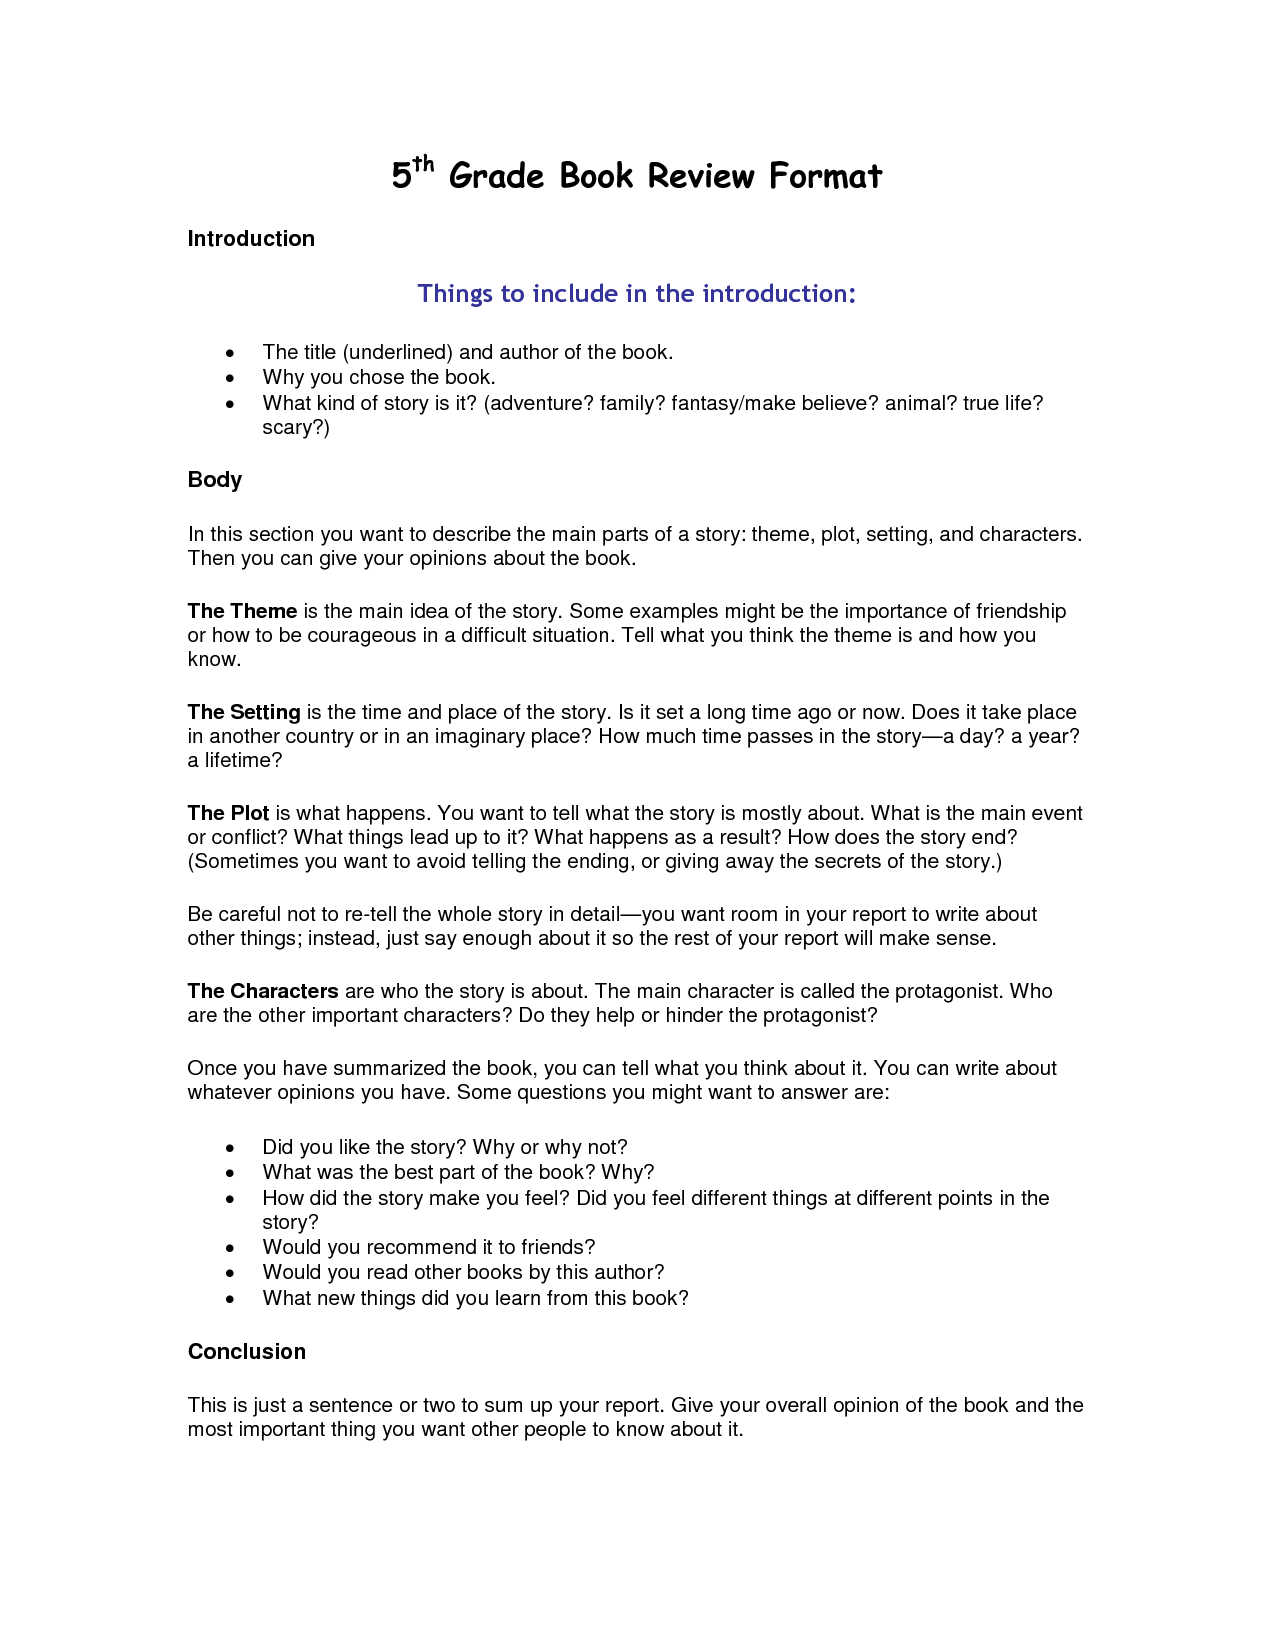 Writing a simple book report outline